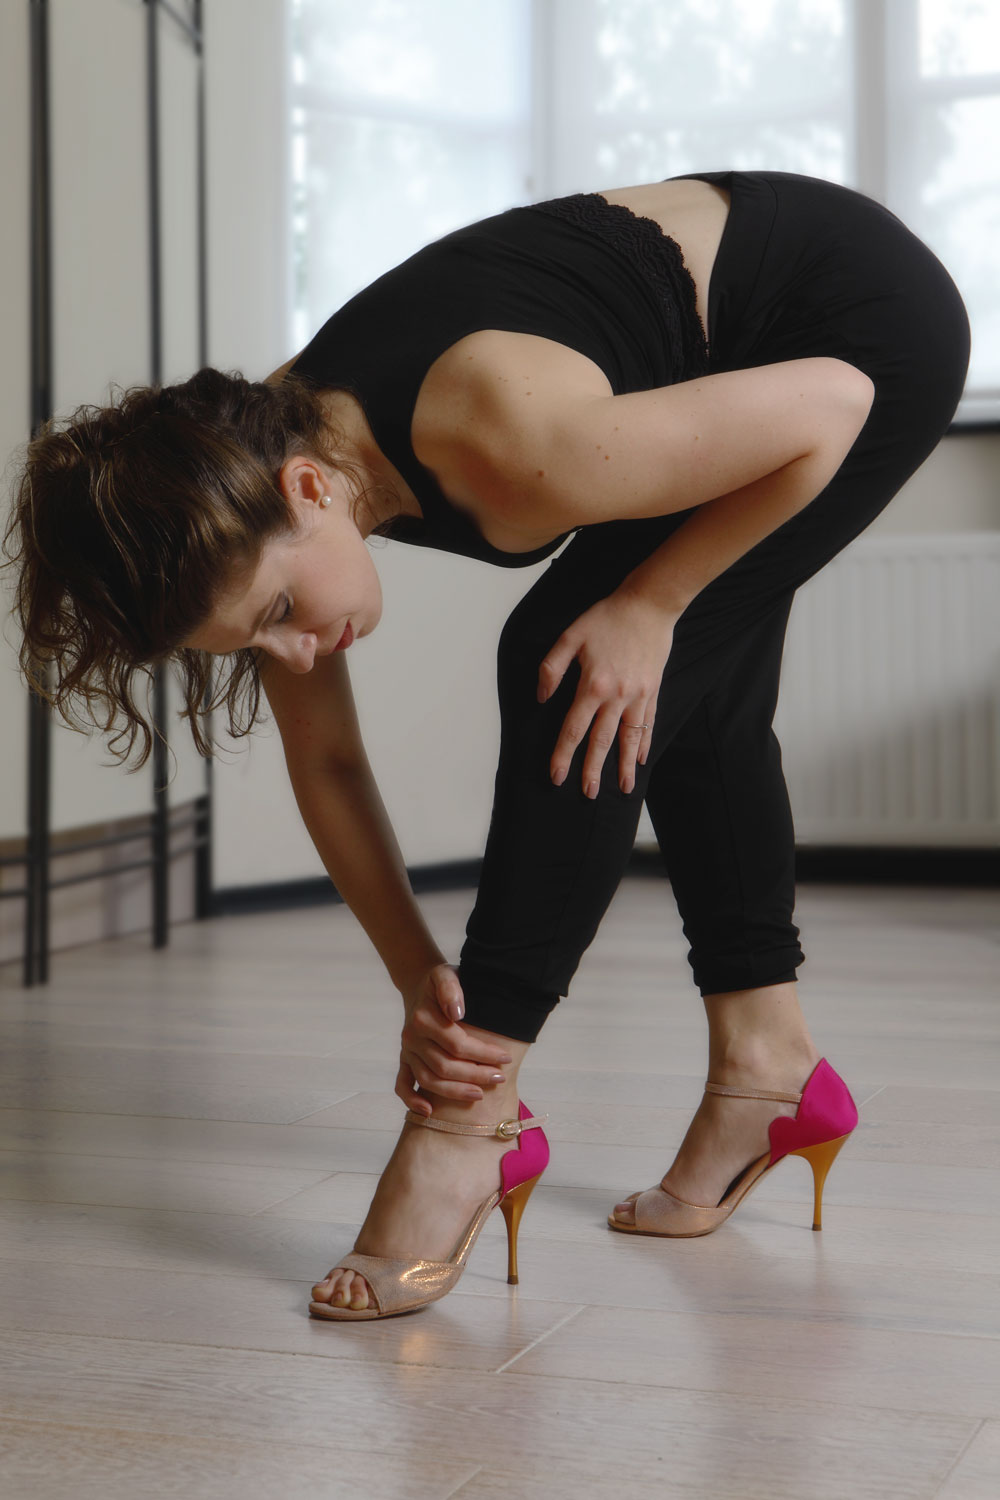 Stefania warming up with Yuyo Brujo shoes - click to shop